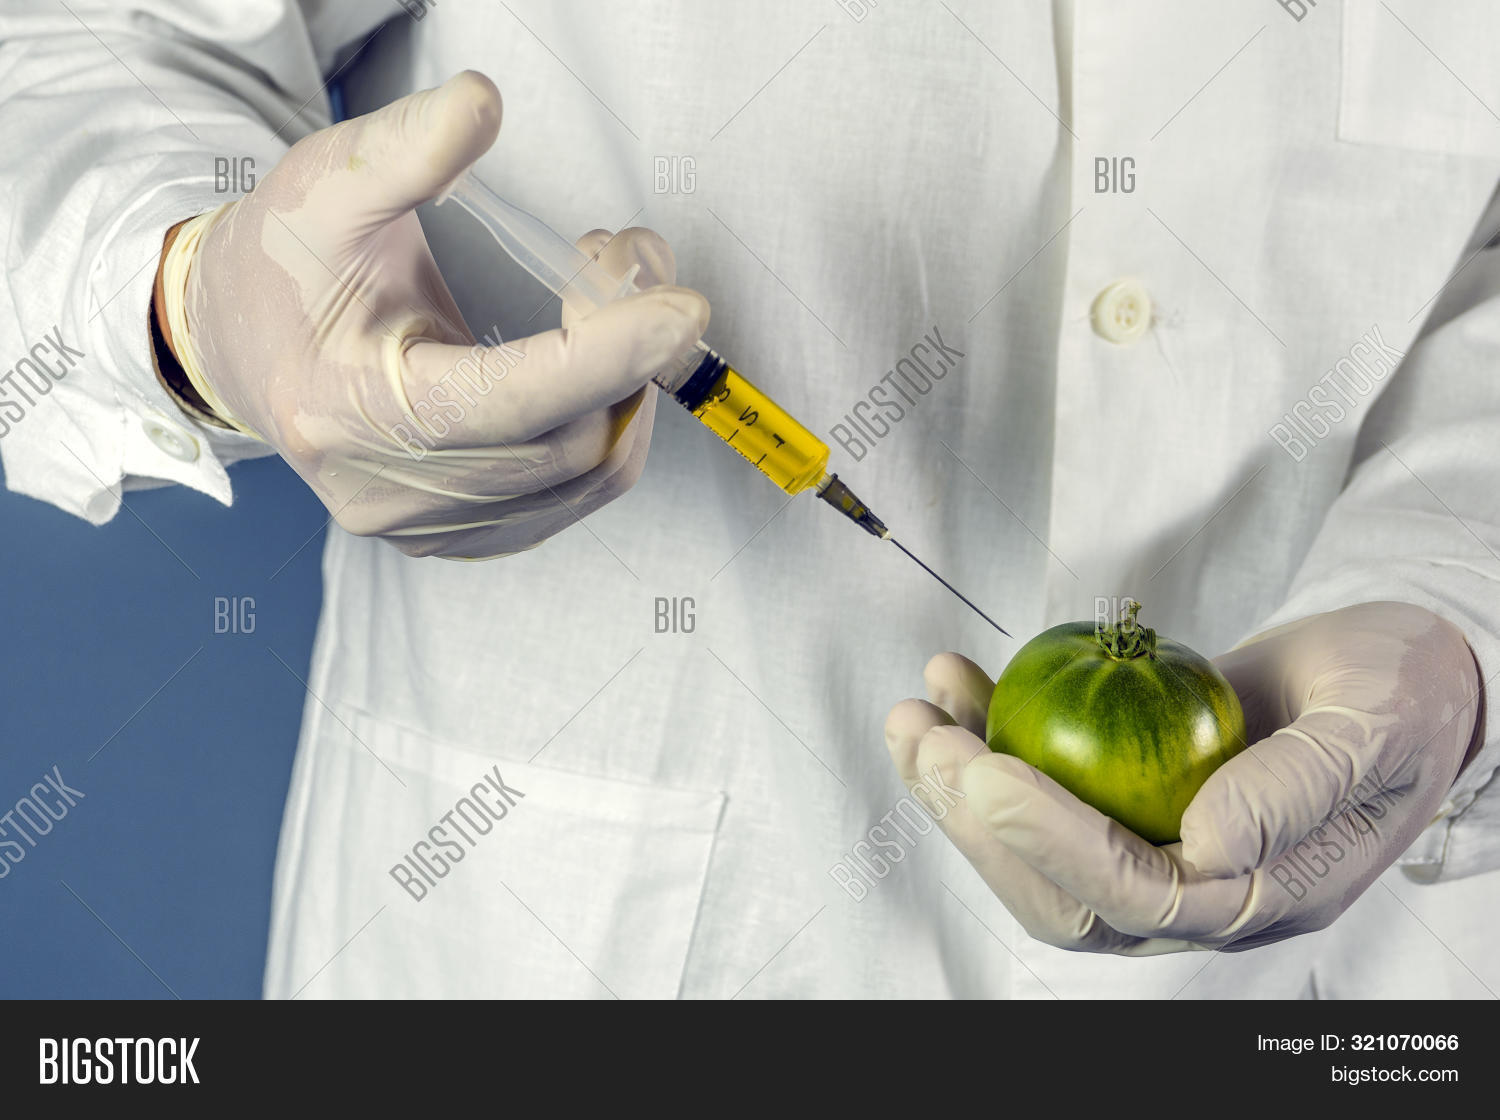 agricultural,assistant,biochemistry,biology,biomaterial,biotechnology,chemist,concentrate,dangerous,emulsifiers,equipment,experiment,food,fresh,genes,genetic,genetically,gmo,hormones,hybrid,injecting,keep,lab,laboratory,male,man,microbiology,modified,mutation,nitrates,organic,organisms,pesticides,poison,preservatives,quality,research,samples,scientific,scientist,spoilage,supplements,technician,technology,test,tomato,tomatoes,toxins,vegetable,work